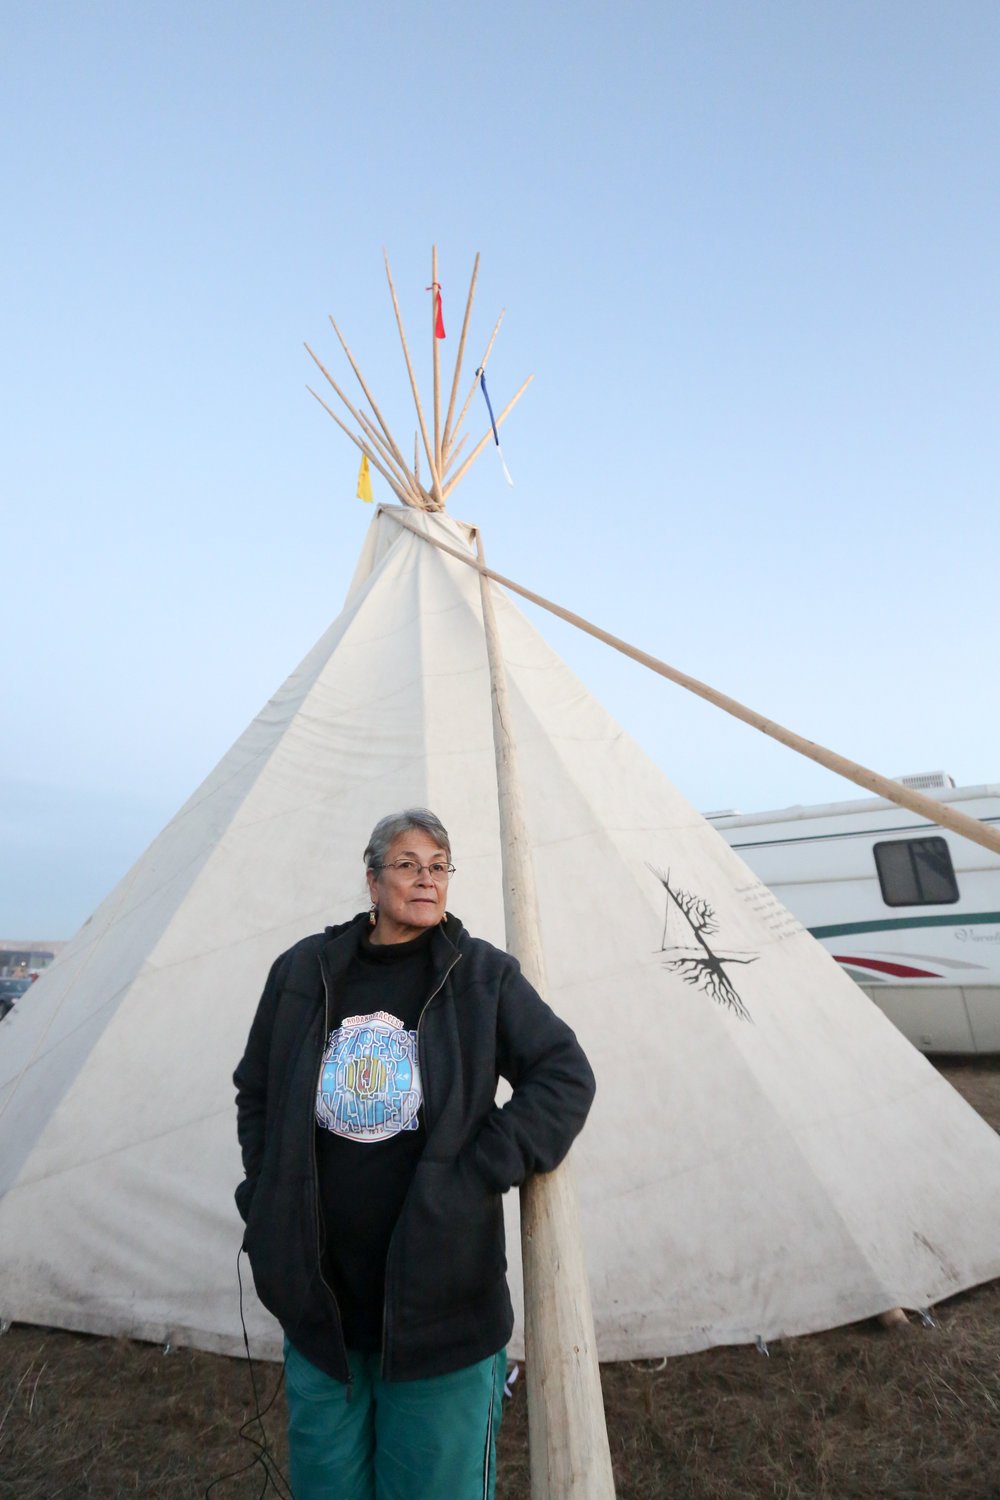 Betty Archambault stands in front of the tepee housing the Montessori school she started at Oceti Sakowin Camp. Photo by Heather Wilson